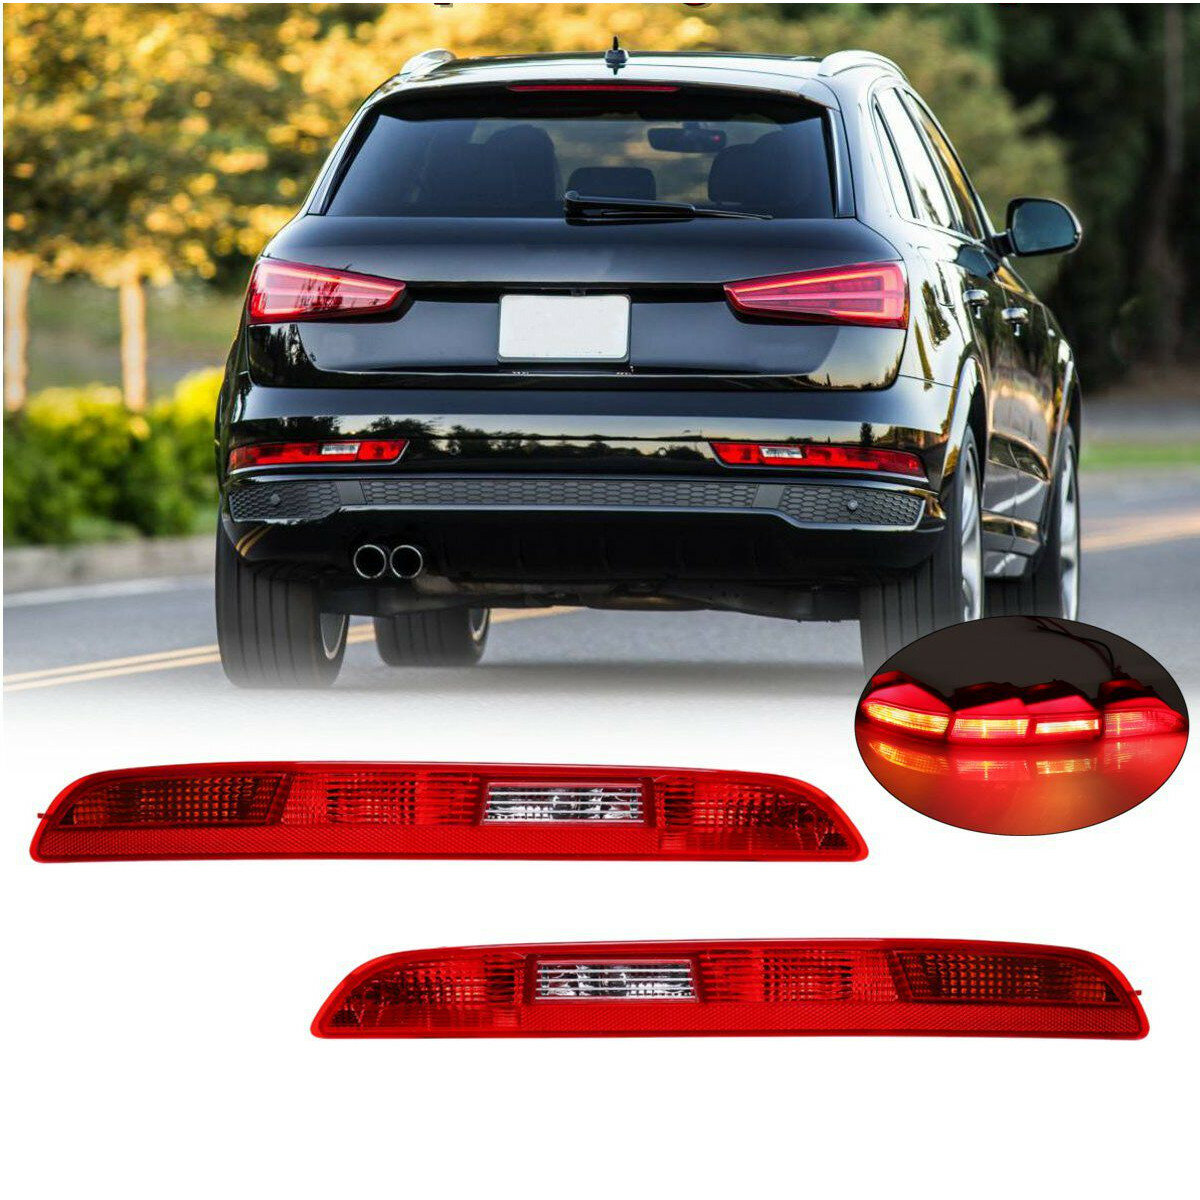 Car Tail Lights >> Rear Left Right Car Side Lower Bumper Tail Light Lamp Red For Audi Q3 2011 2014